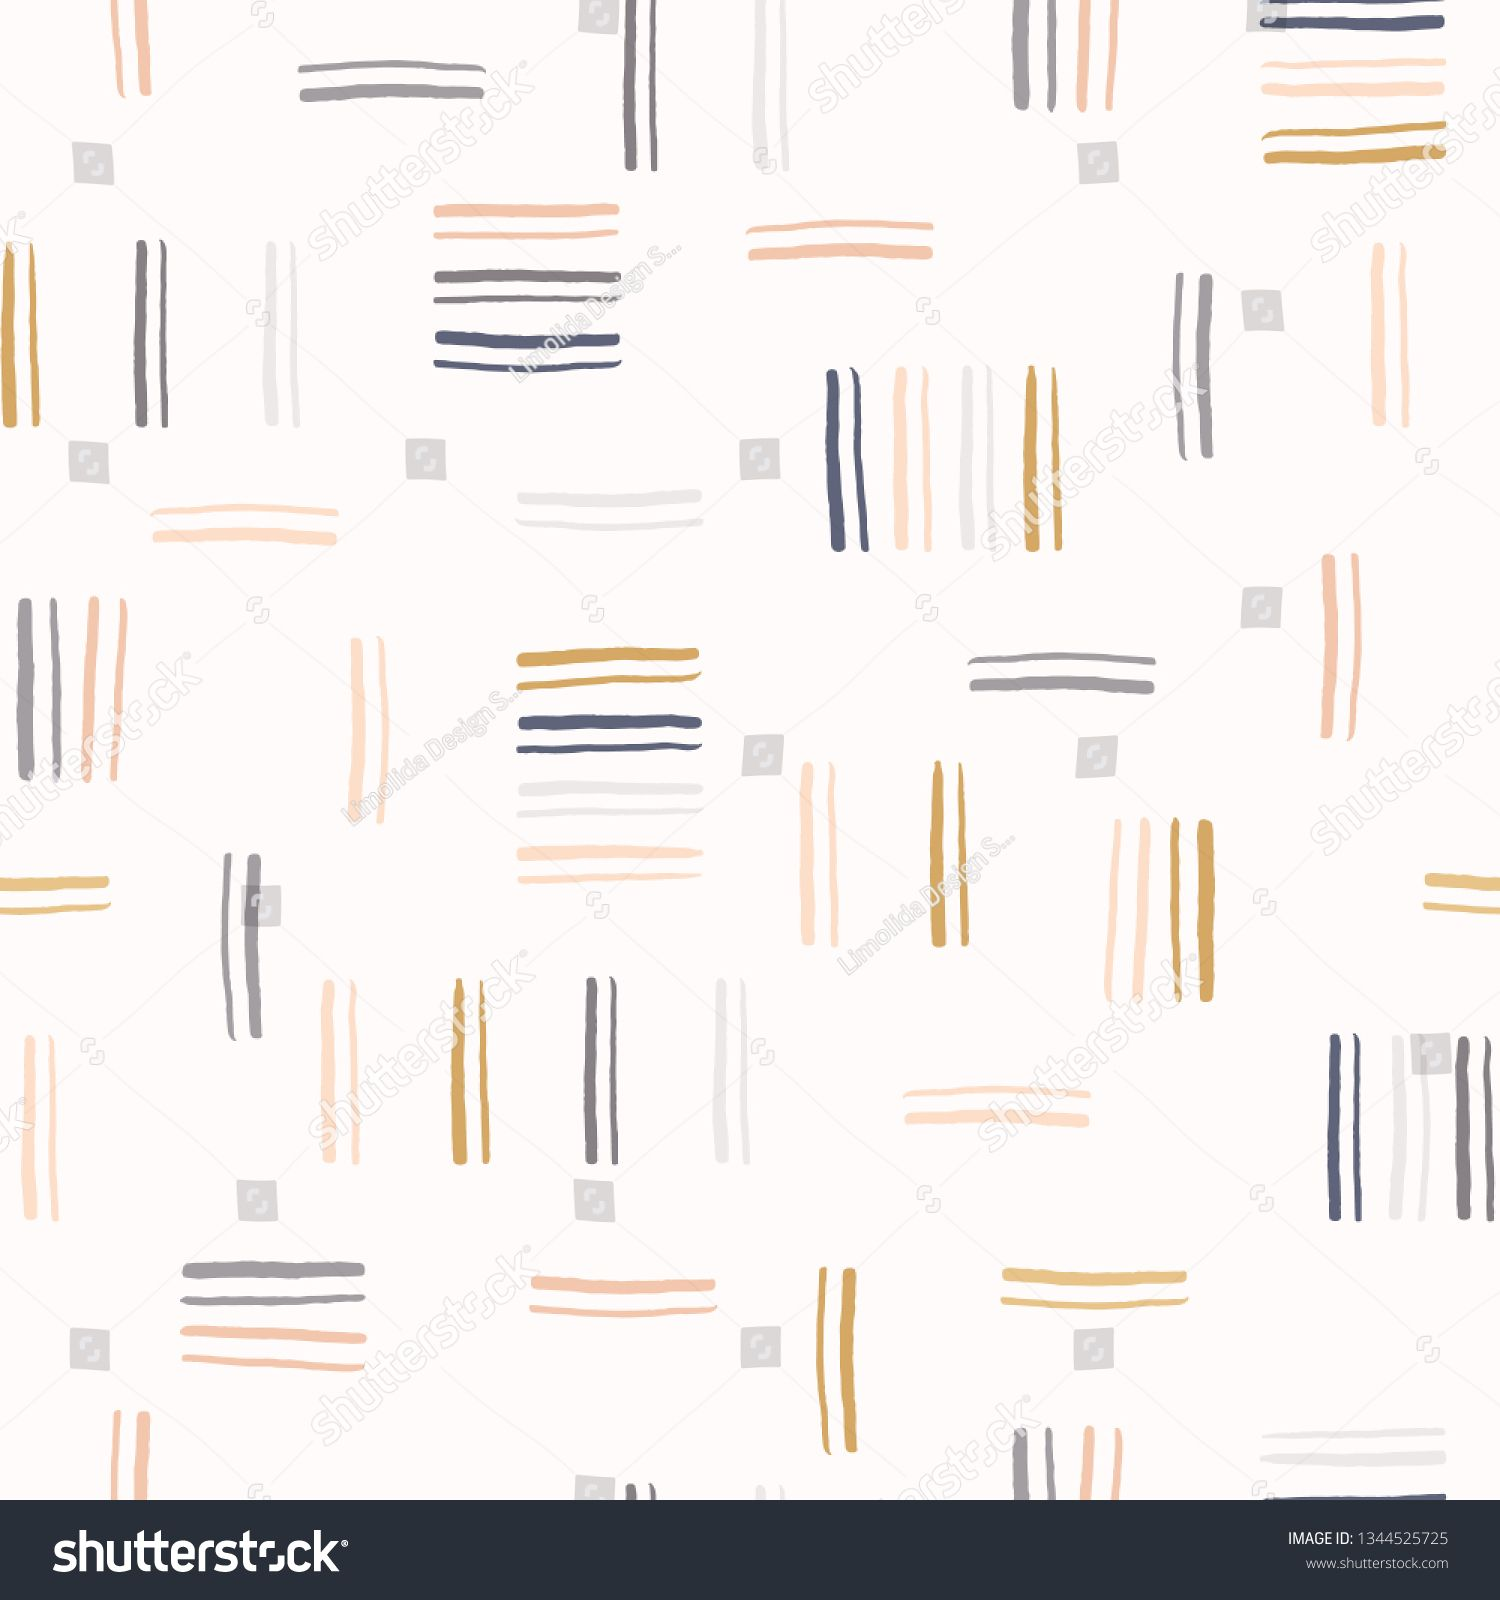 Pin On Pattern Stripes Straight Lines Curved Waves Linear Seamless Repeat Vector